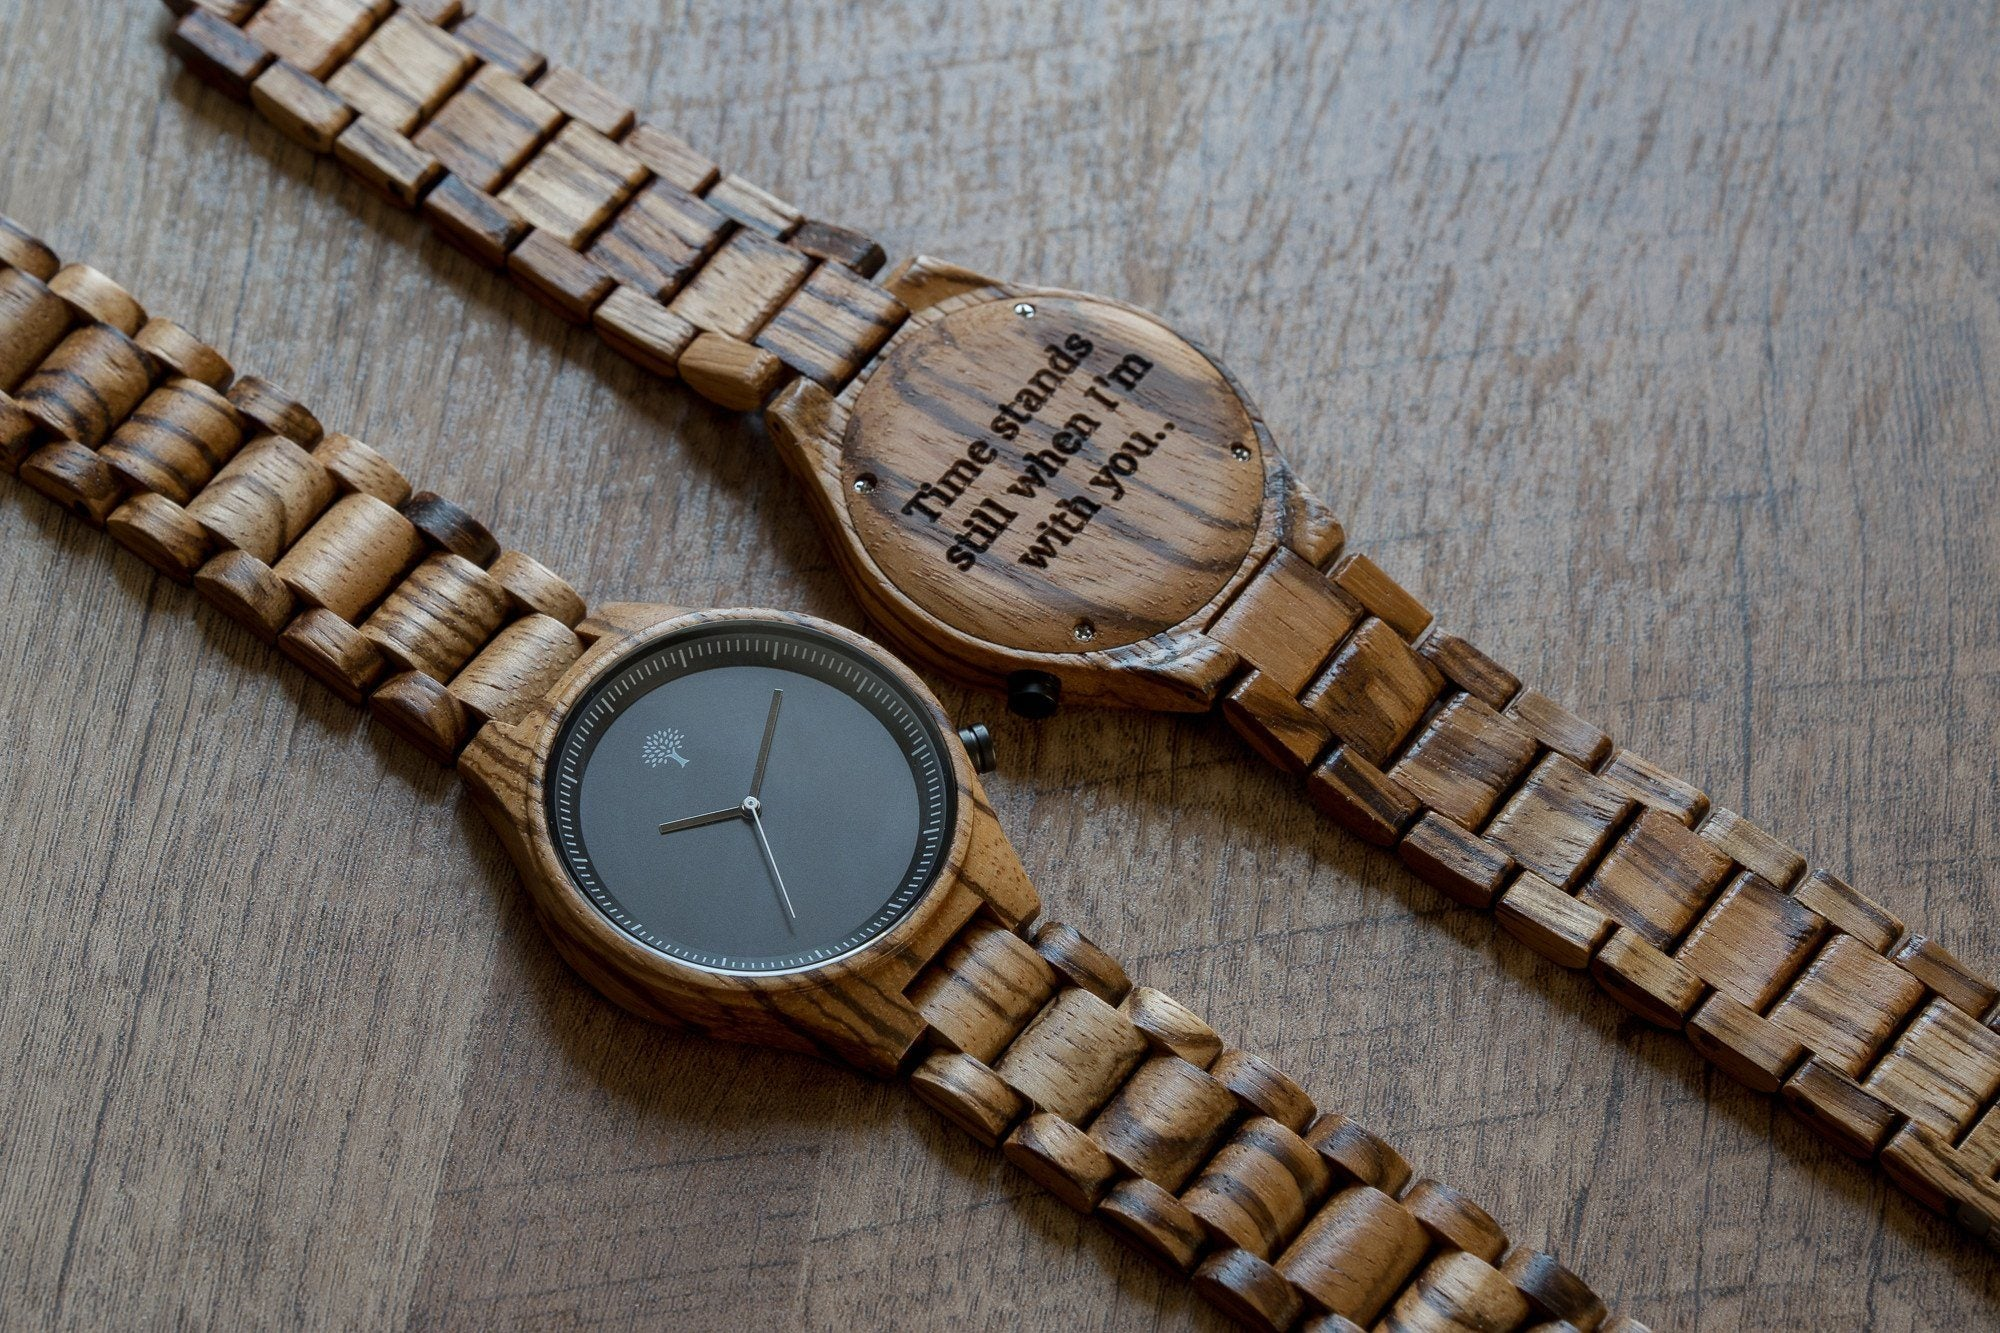 watch watches a building wooden youtube wood custom